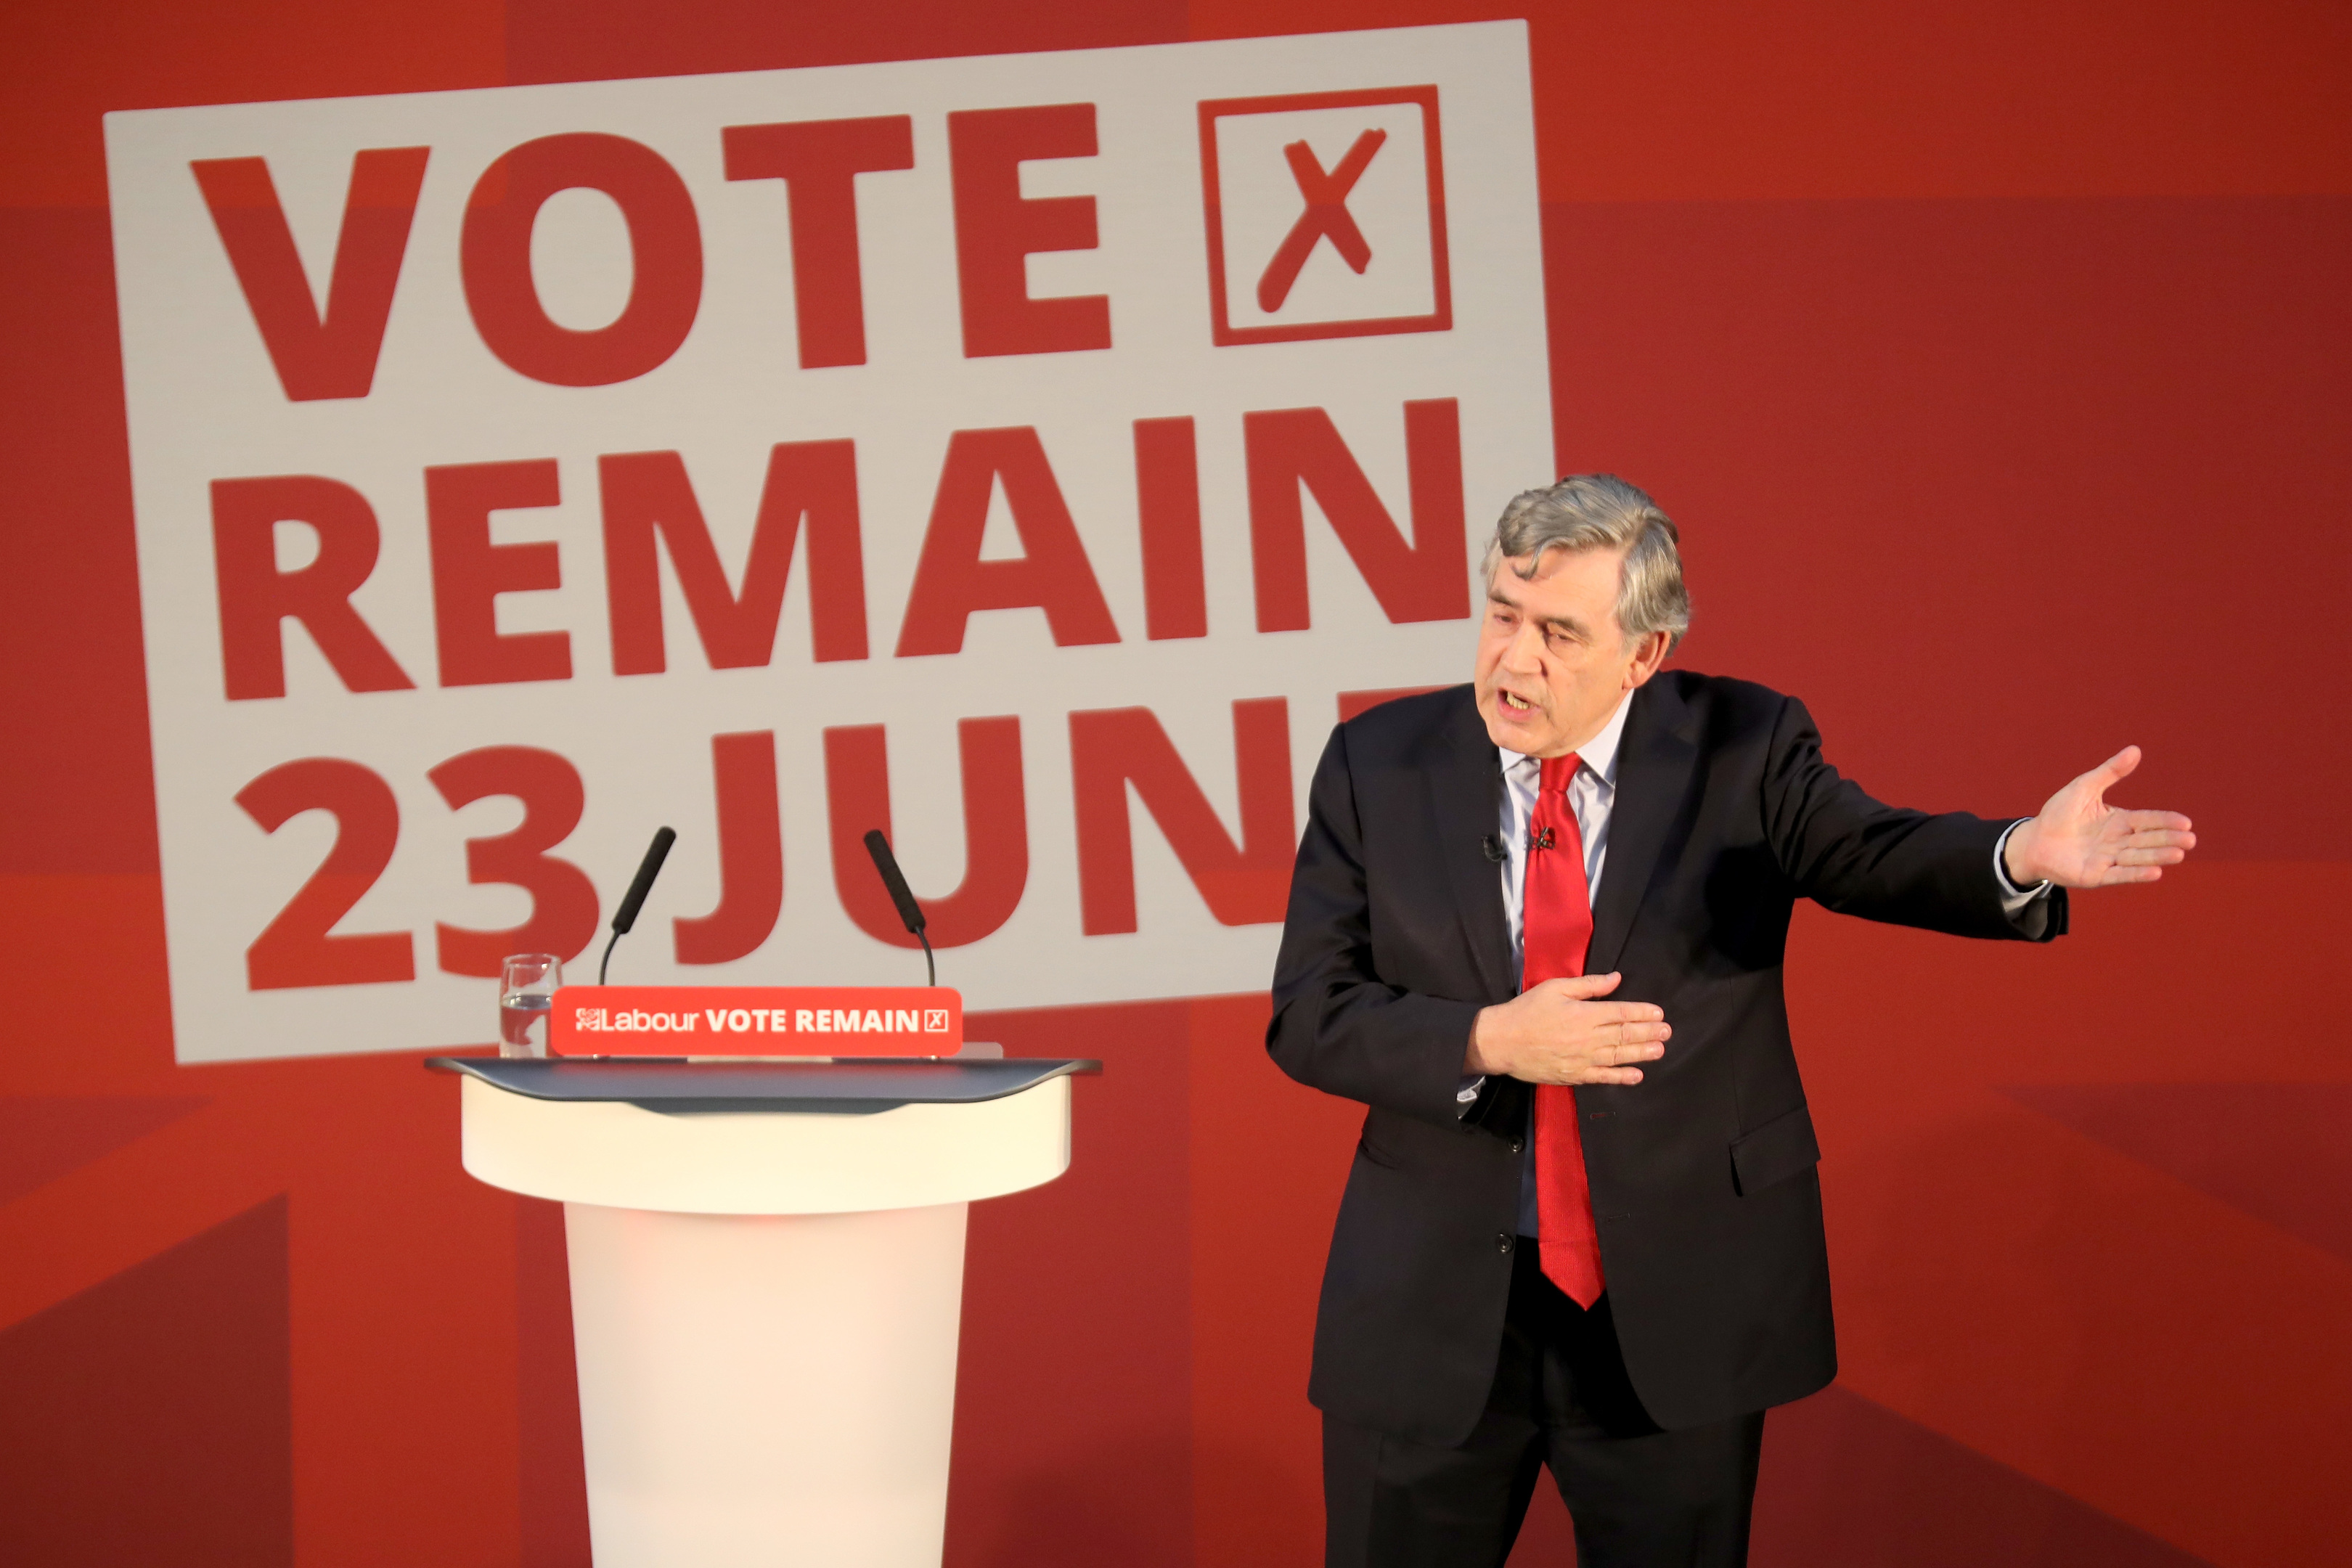 Gordon Brown is urging voters to choose to remain in the EU.